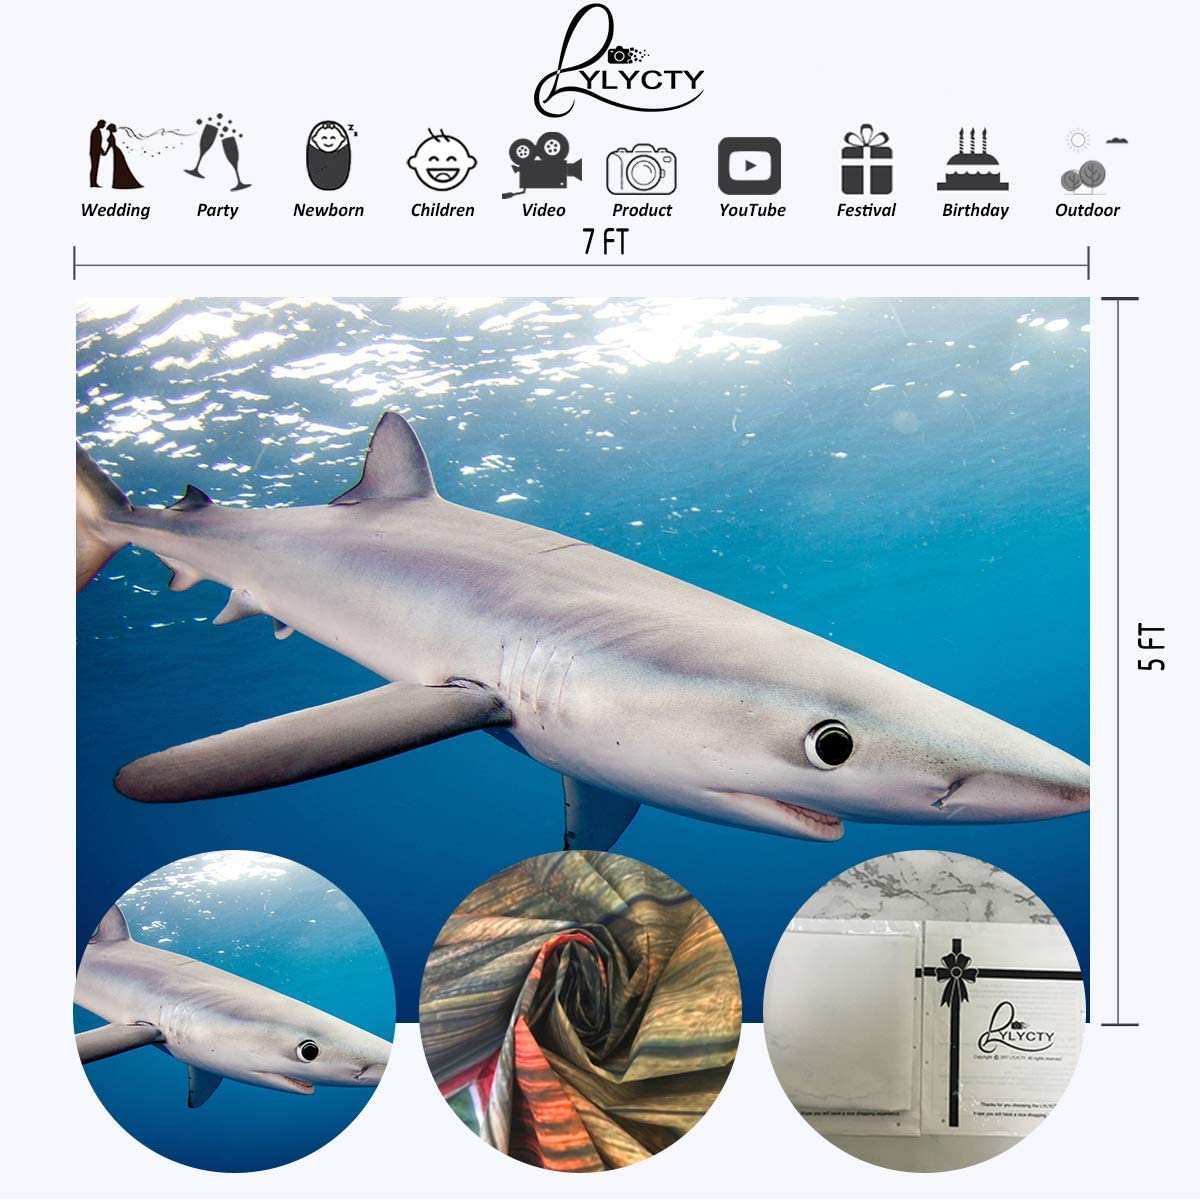 10x6.5ft Vinyl Shark Background White Shark Blue Water for The Aquarium Photography Background Marine Life Film Photography Background LY255 for Party Decoration Birthday YouTube Videos School Photosh